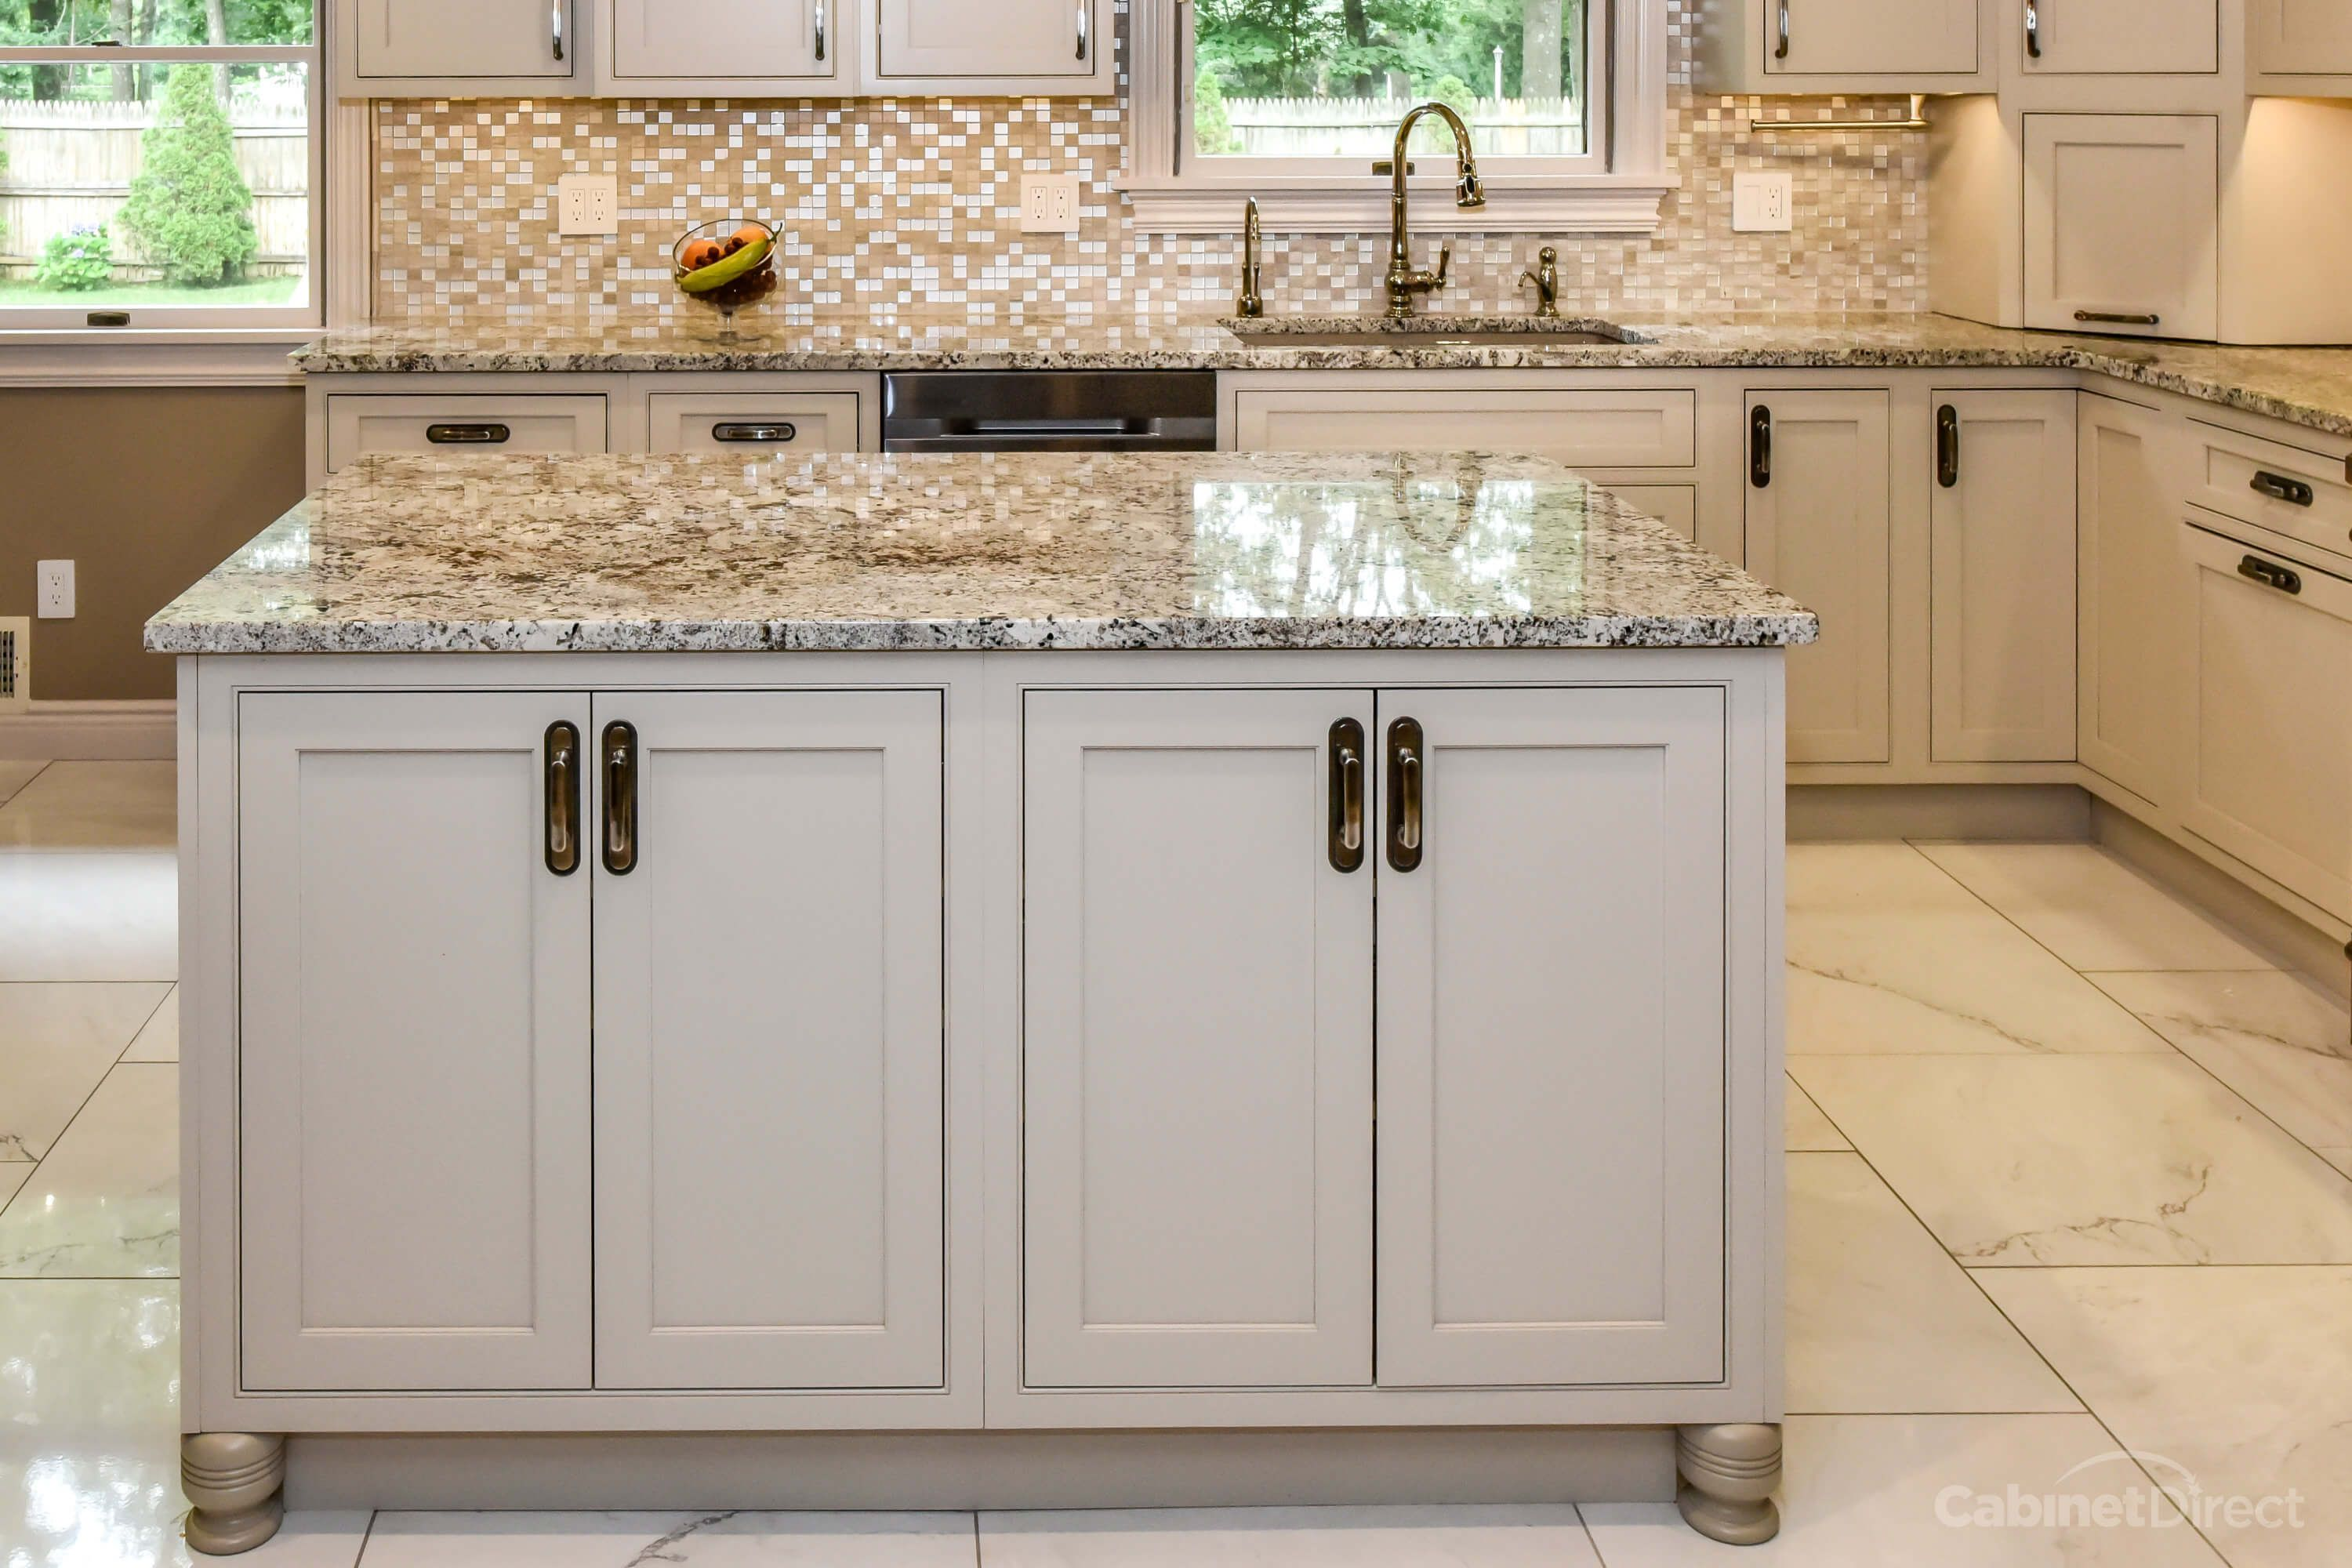 Britany Grieger Designed This Kitchen With Starmark Cabinetry S Bridgeport Door Style In Maple Finished Custom Kitchens Cabinet Door Styles Gray Cabinet Color